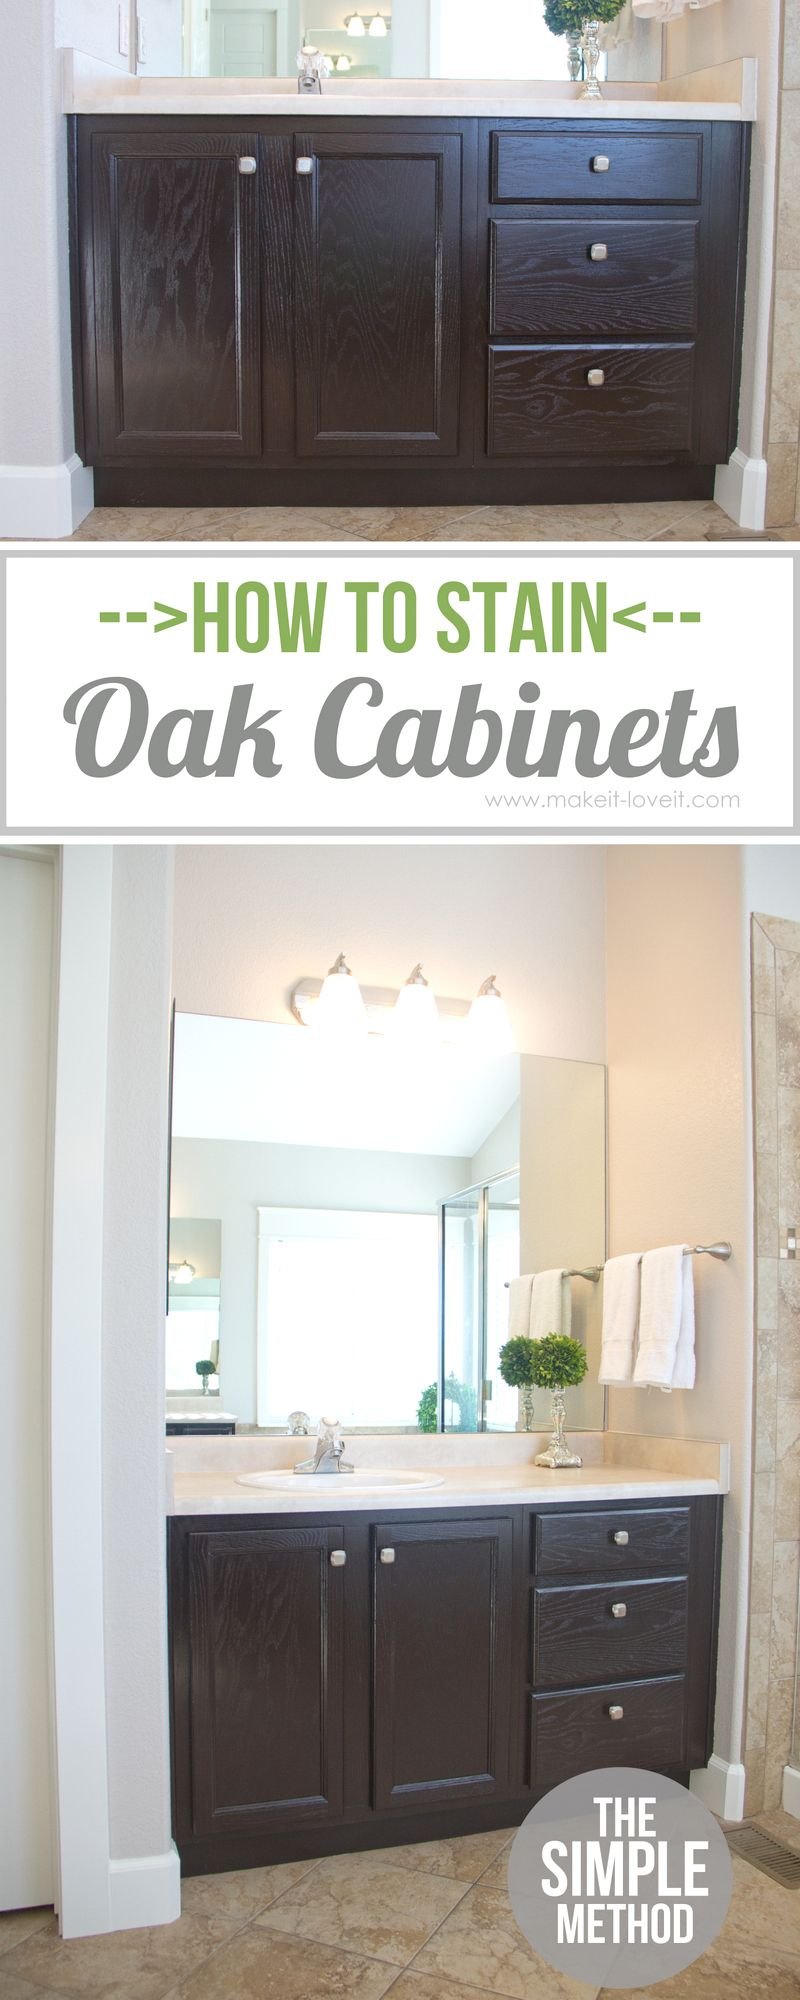 stain kitchen cabinets without sanding how to stain oak cabinets the simple method no sanding 8218